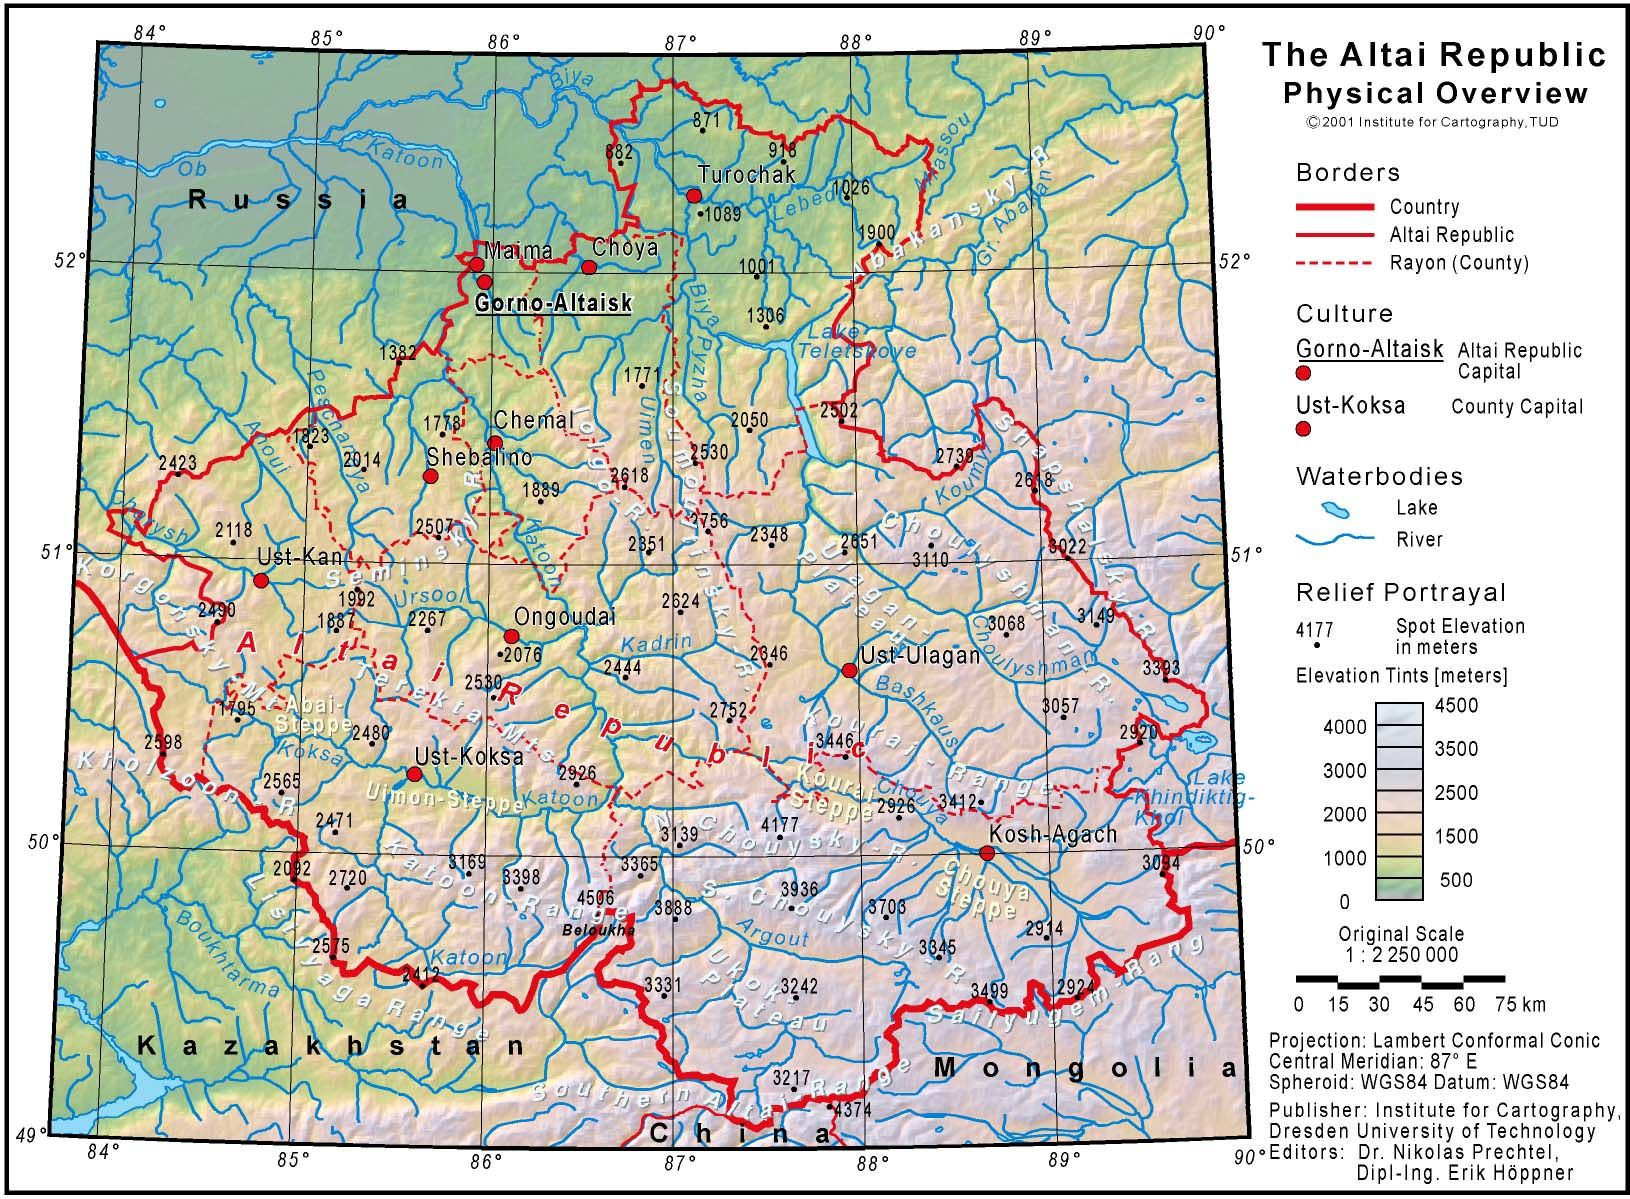 A map of the Altai